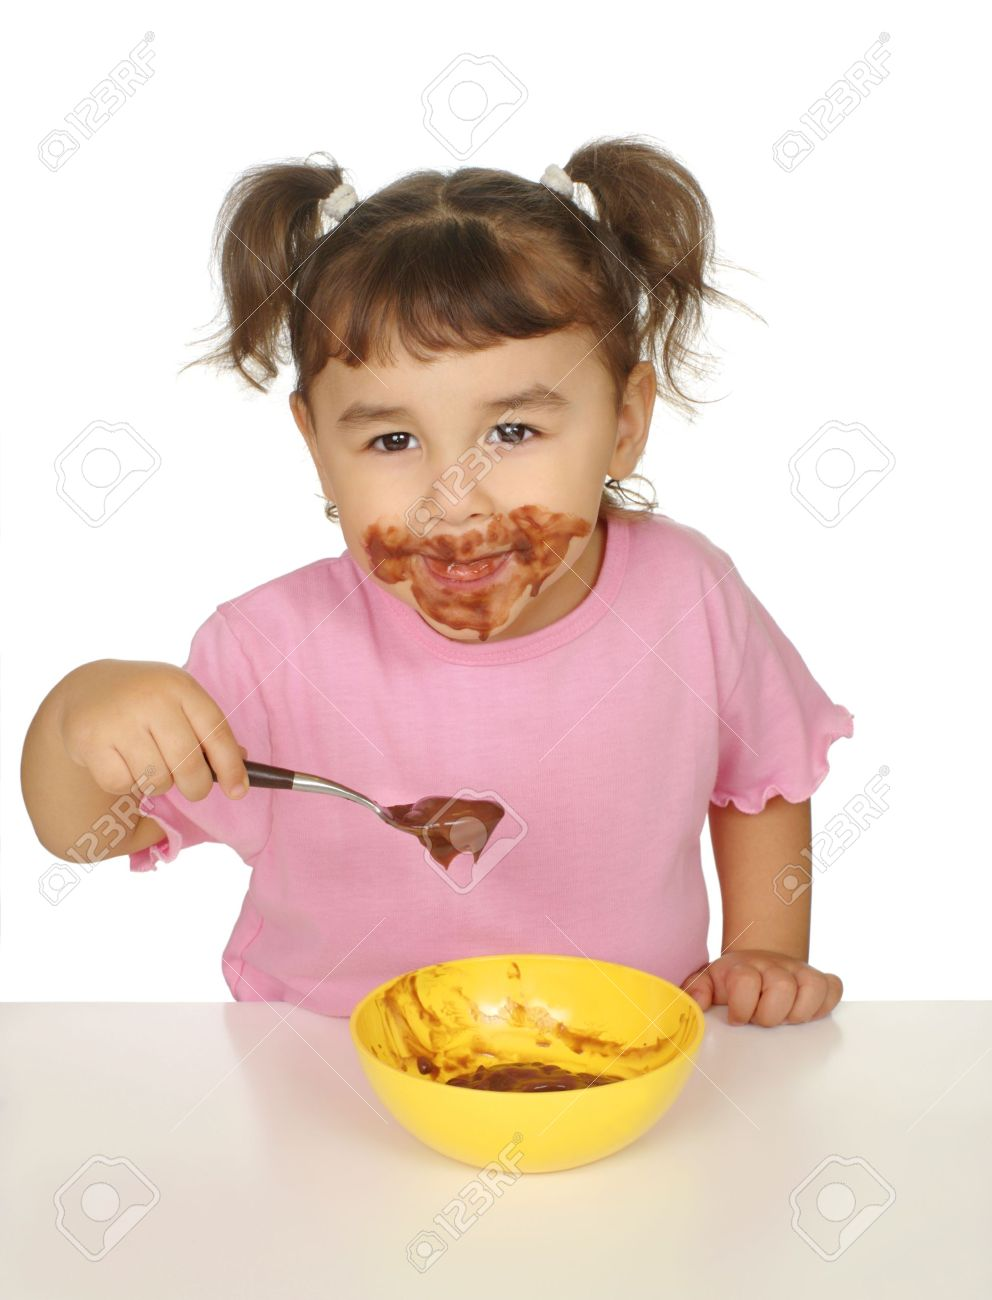 Kid With Chocolate Pudding Messy Face Stock Photo, Picture And ...